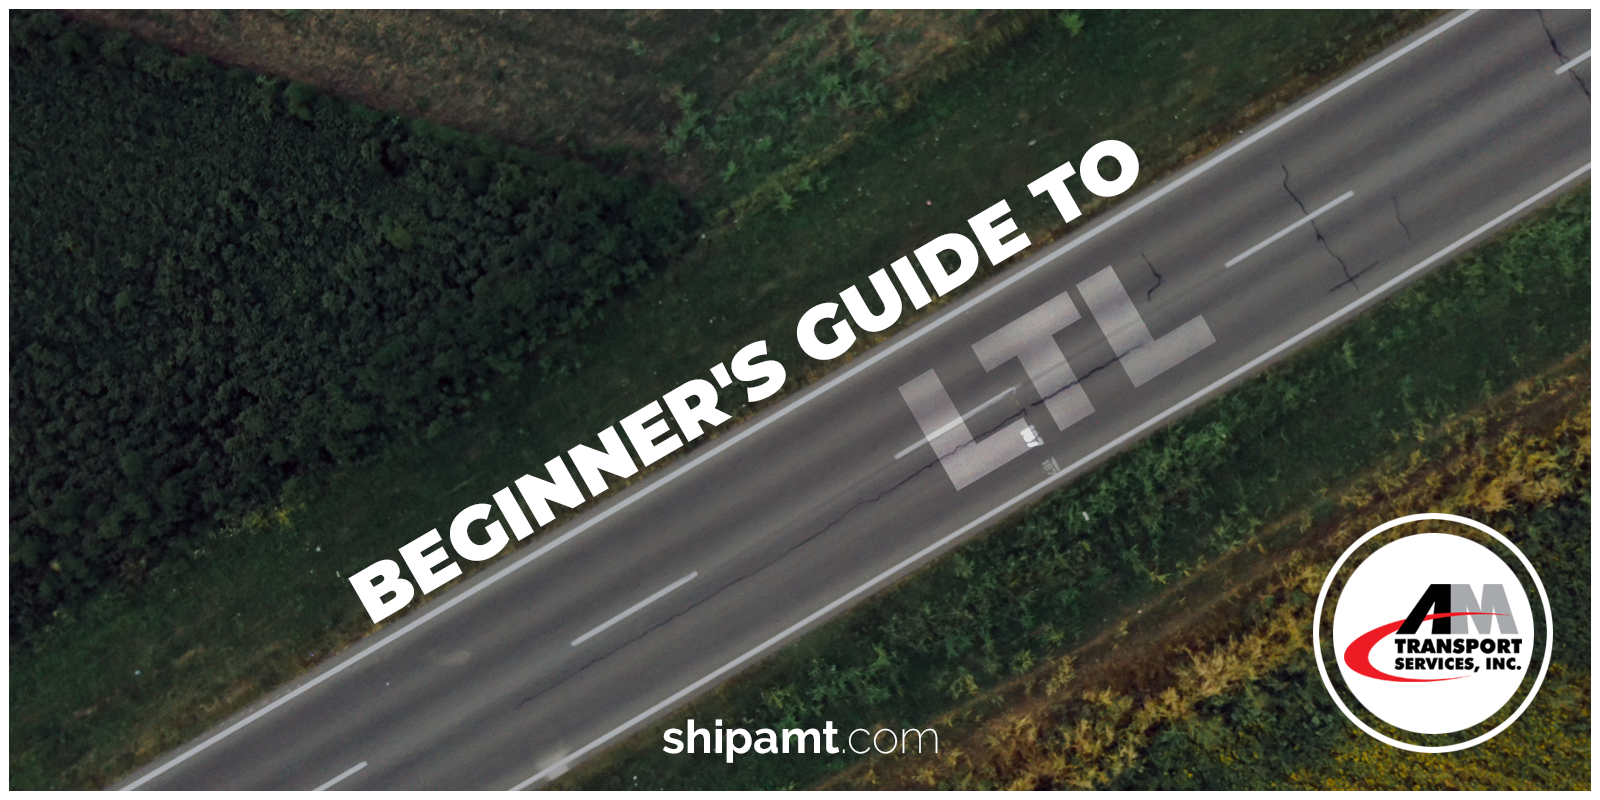 Picture of fourlane highway with title: Beginner's Guide to LTL